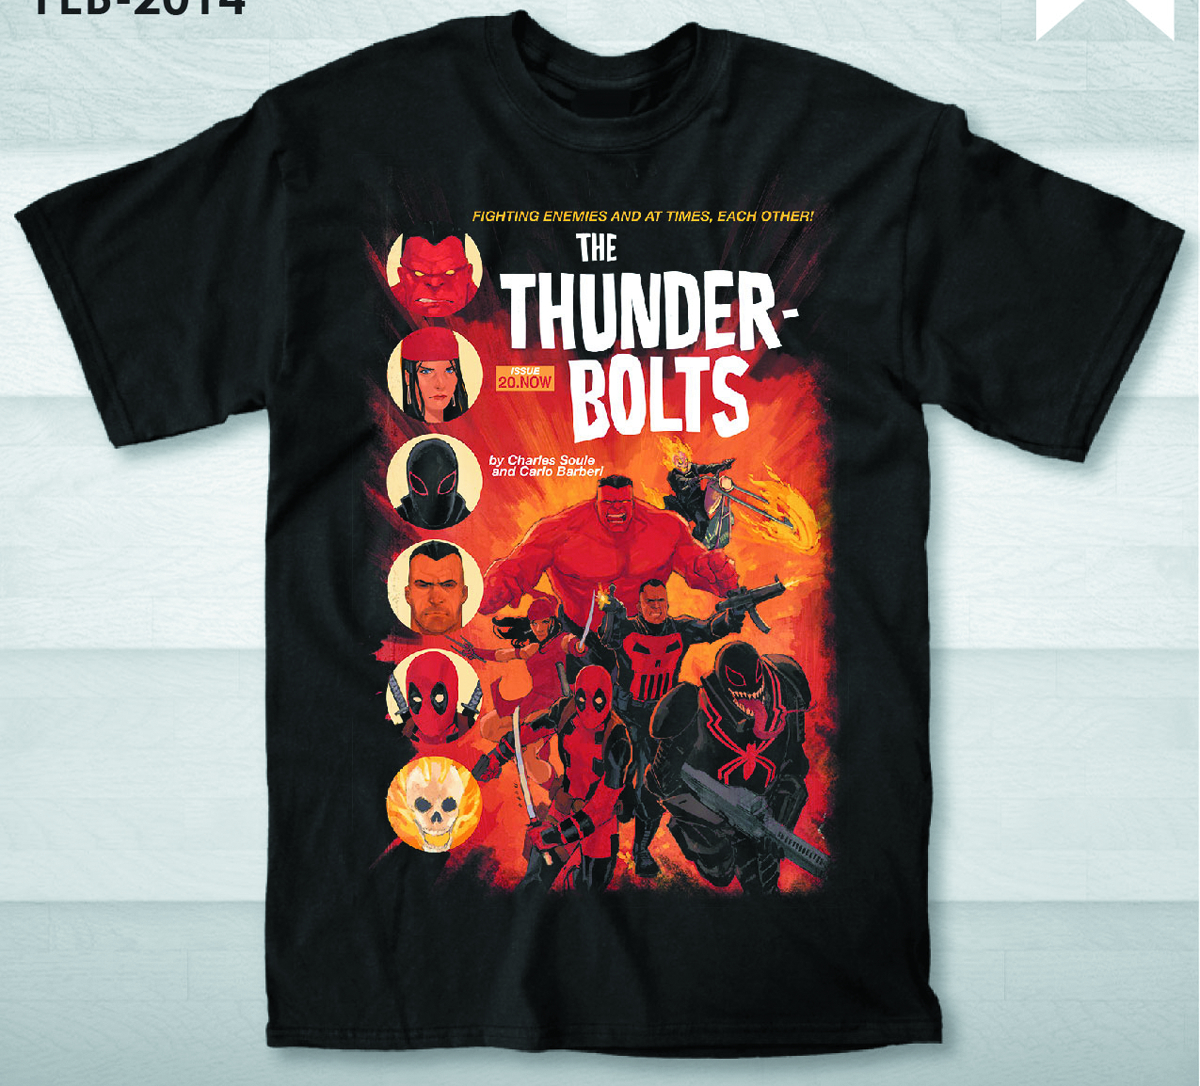 THUNDERBOLTS PX BLK T/S XL